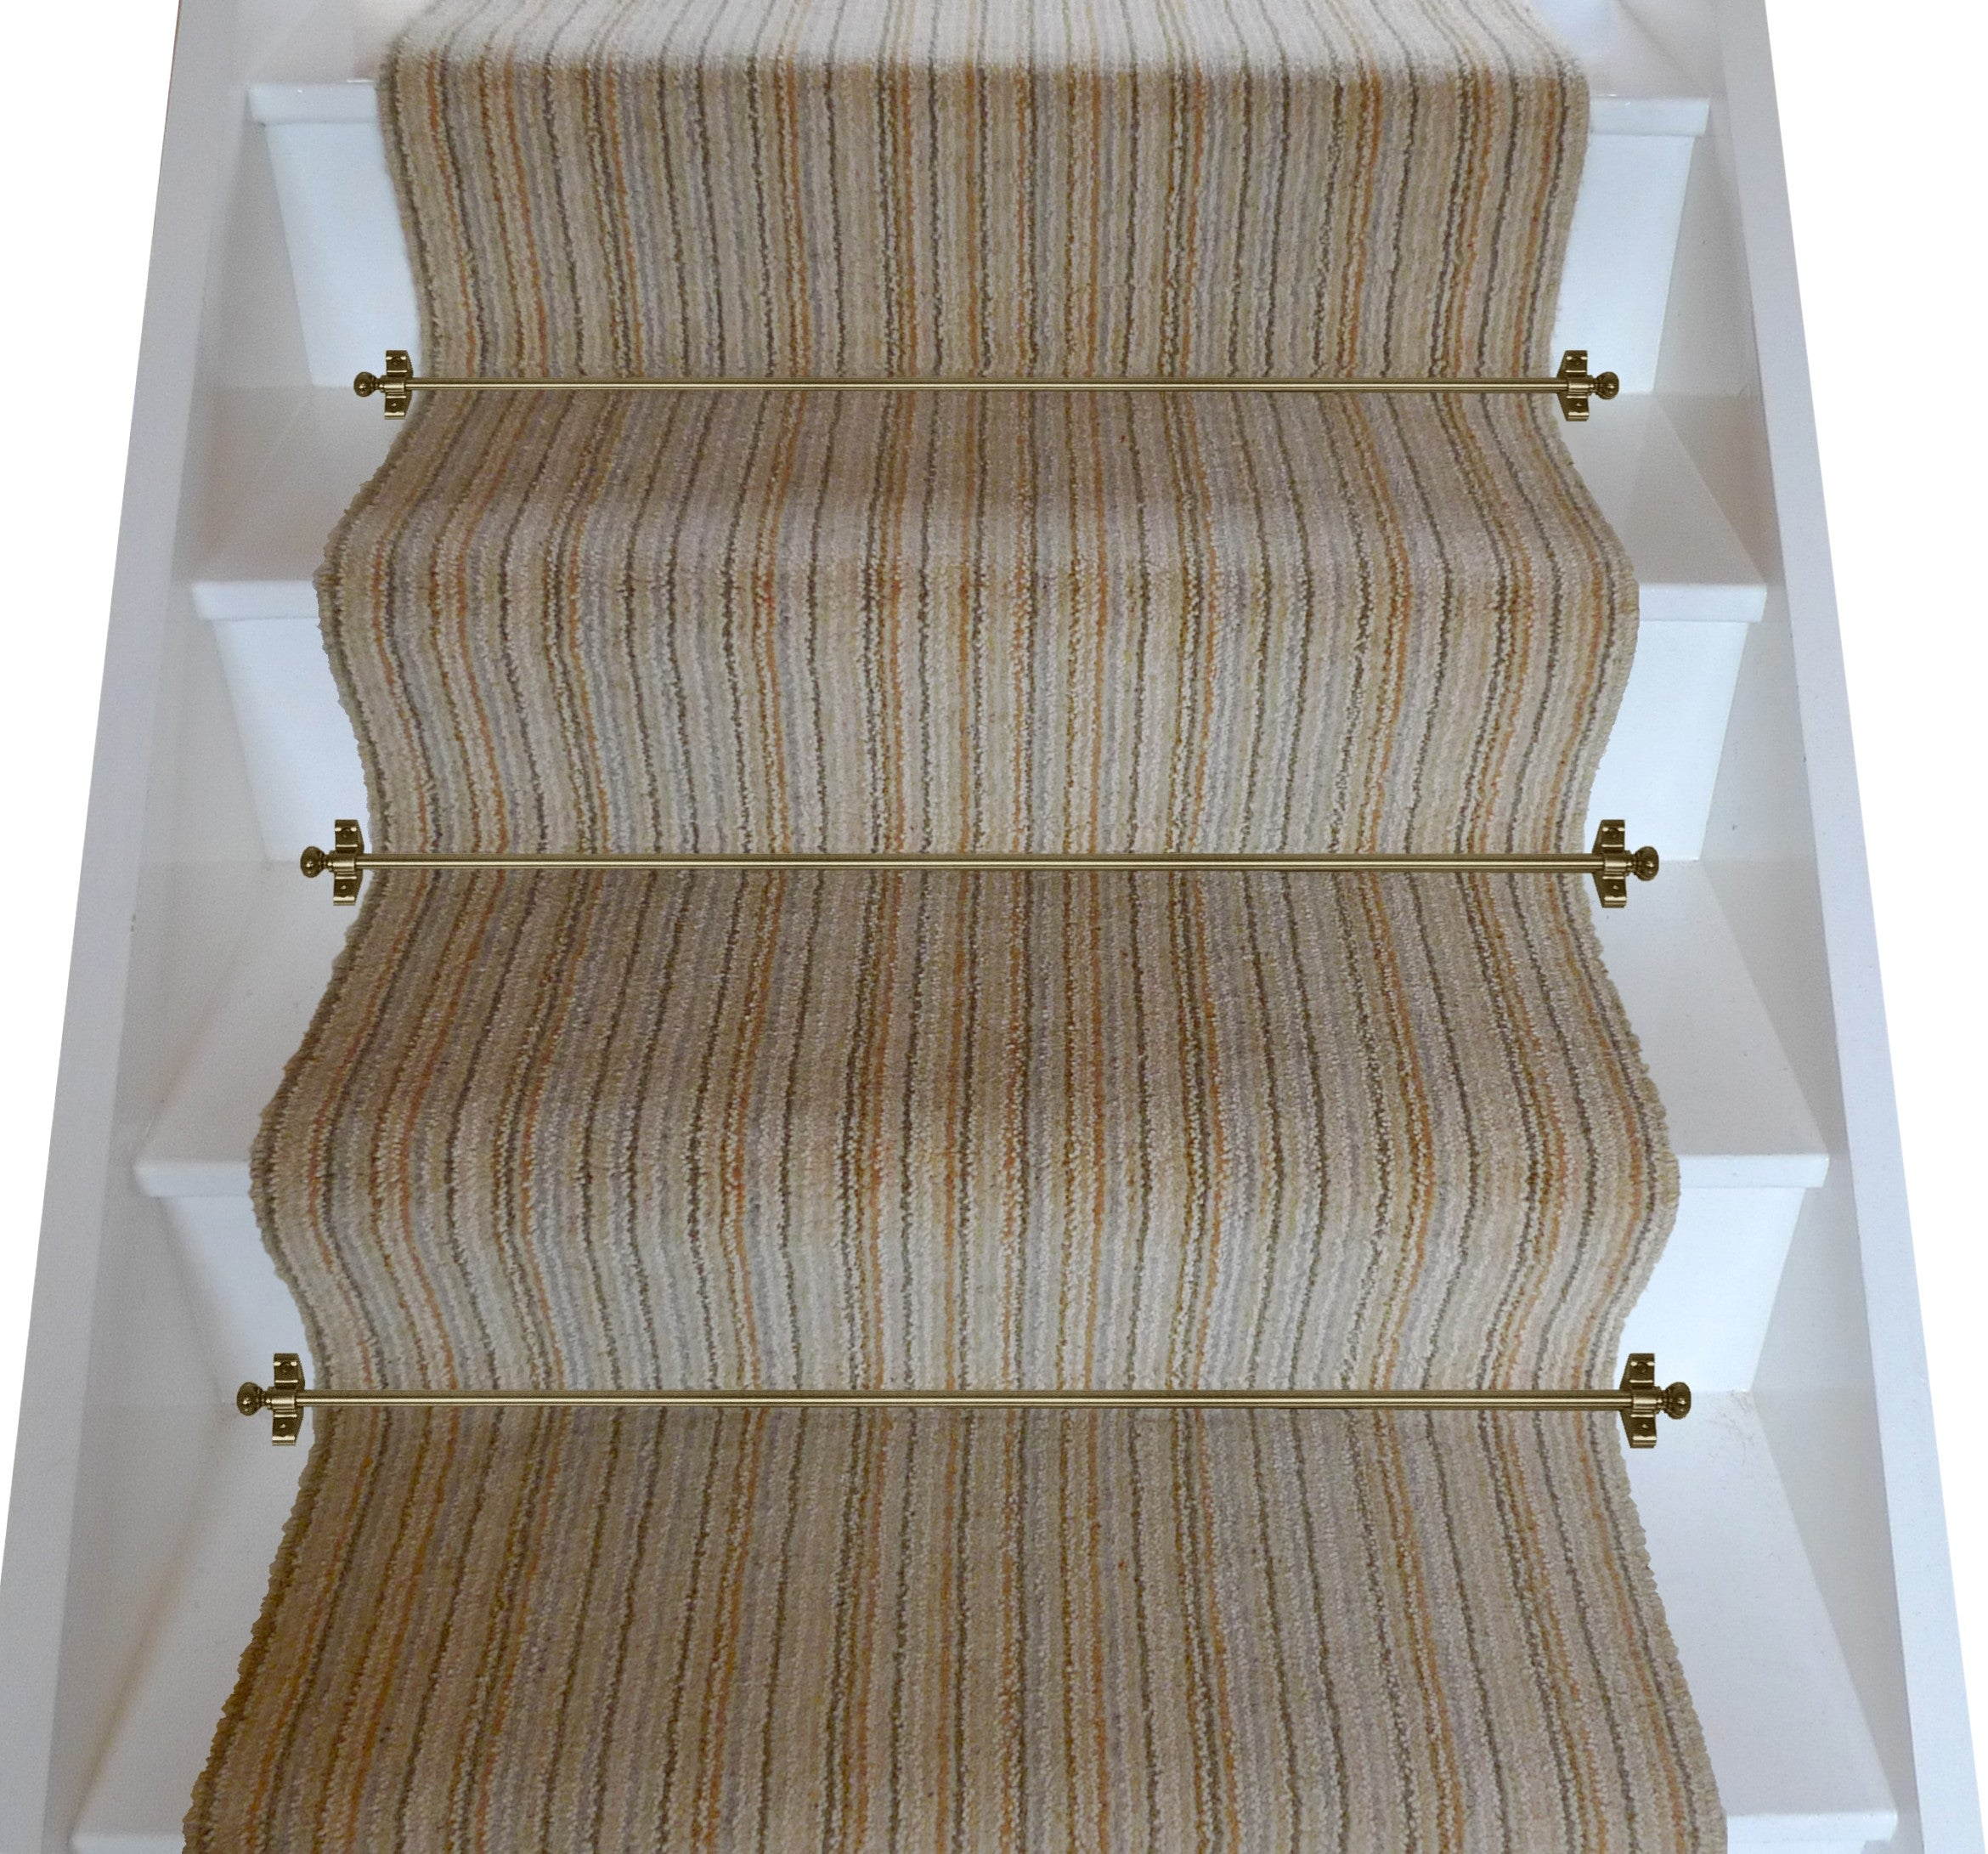 Replacing Carpet With A Stair Runner: Brintons Carpets Pure Living Mandarin Cord Stair Runner